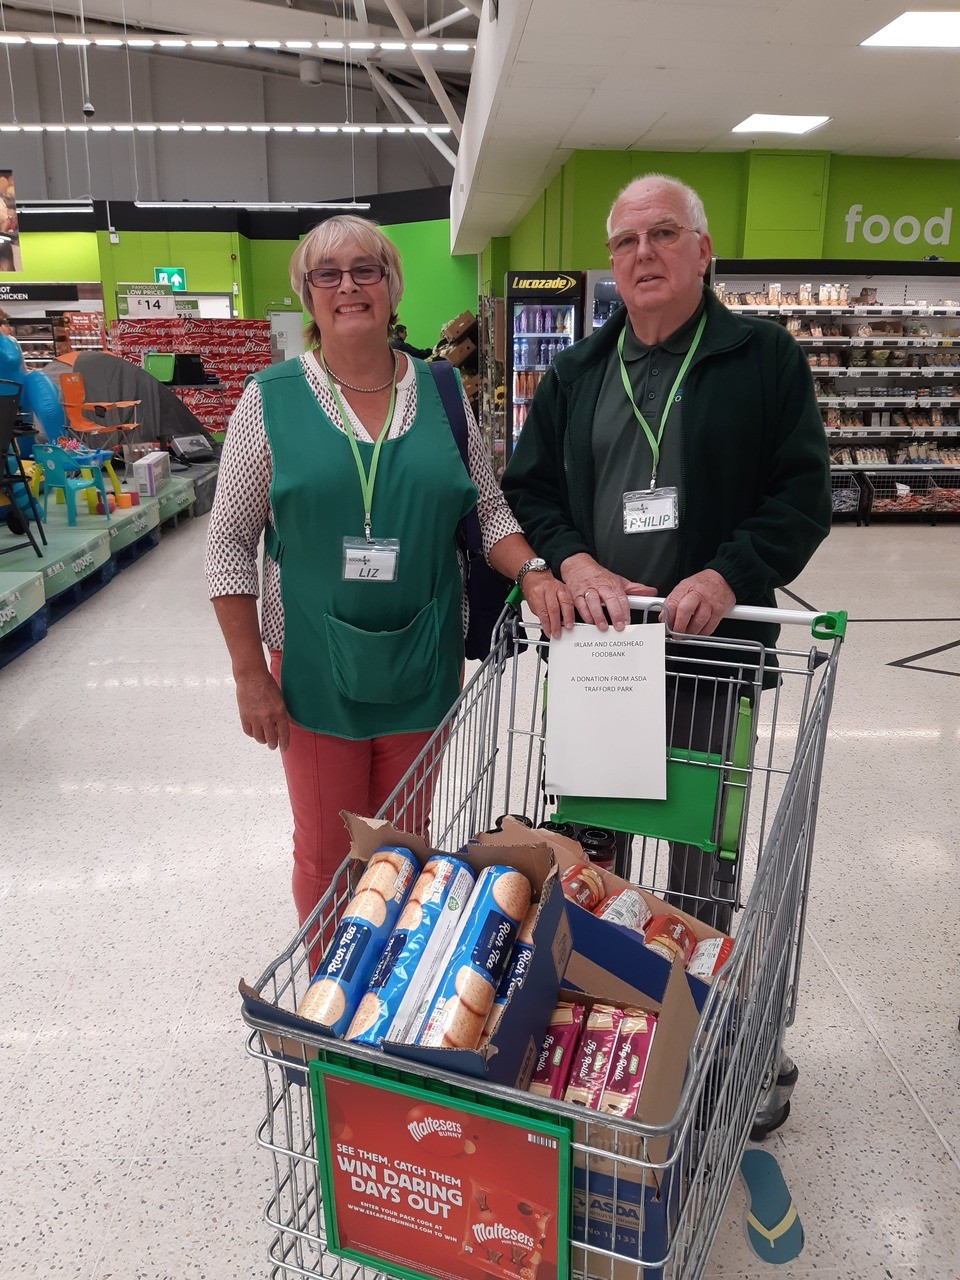 Irlam and cadishead foodbank picking up a food donation from Asda Trafford park. | Asda Trafford Park